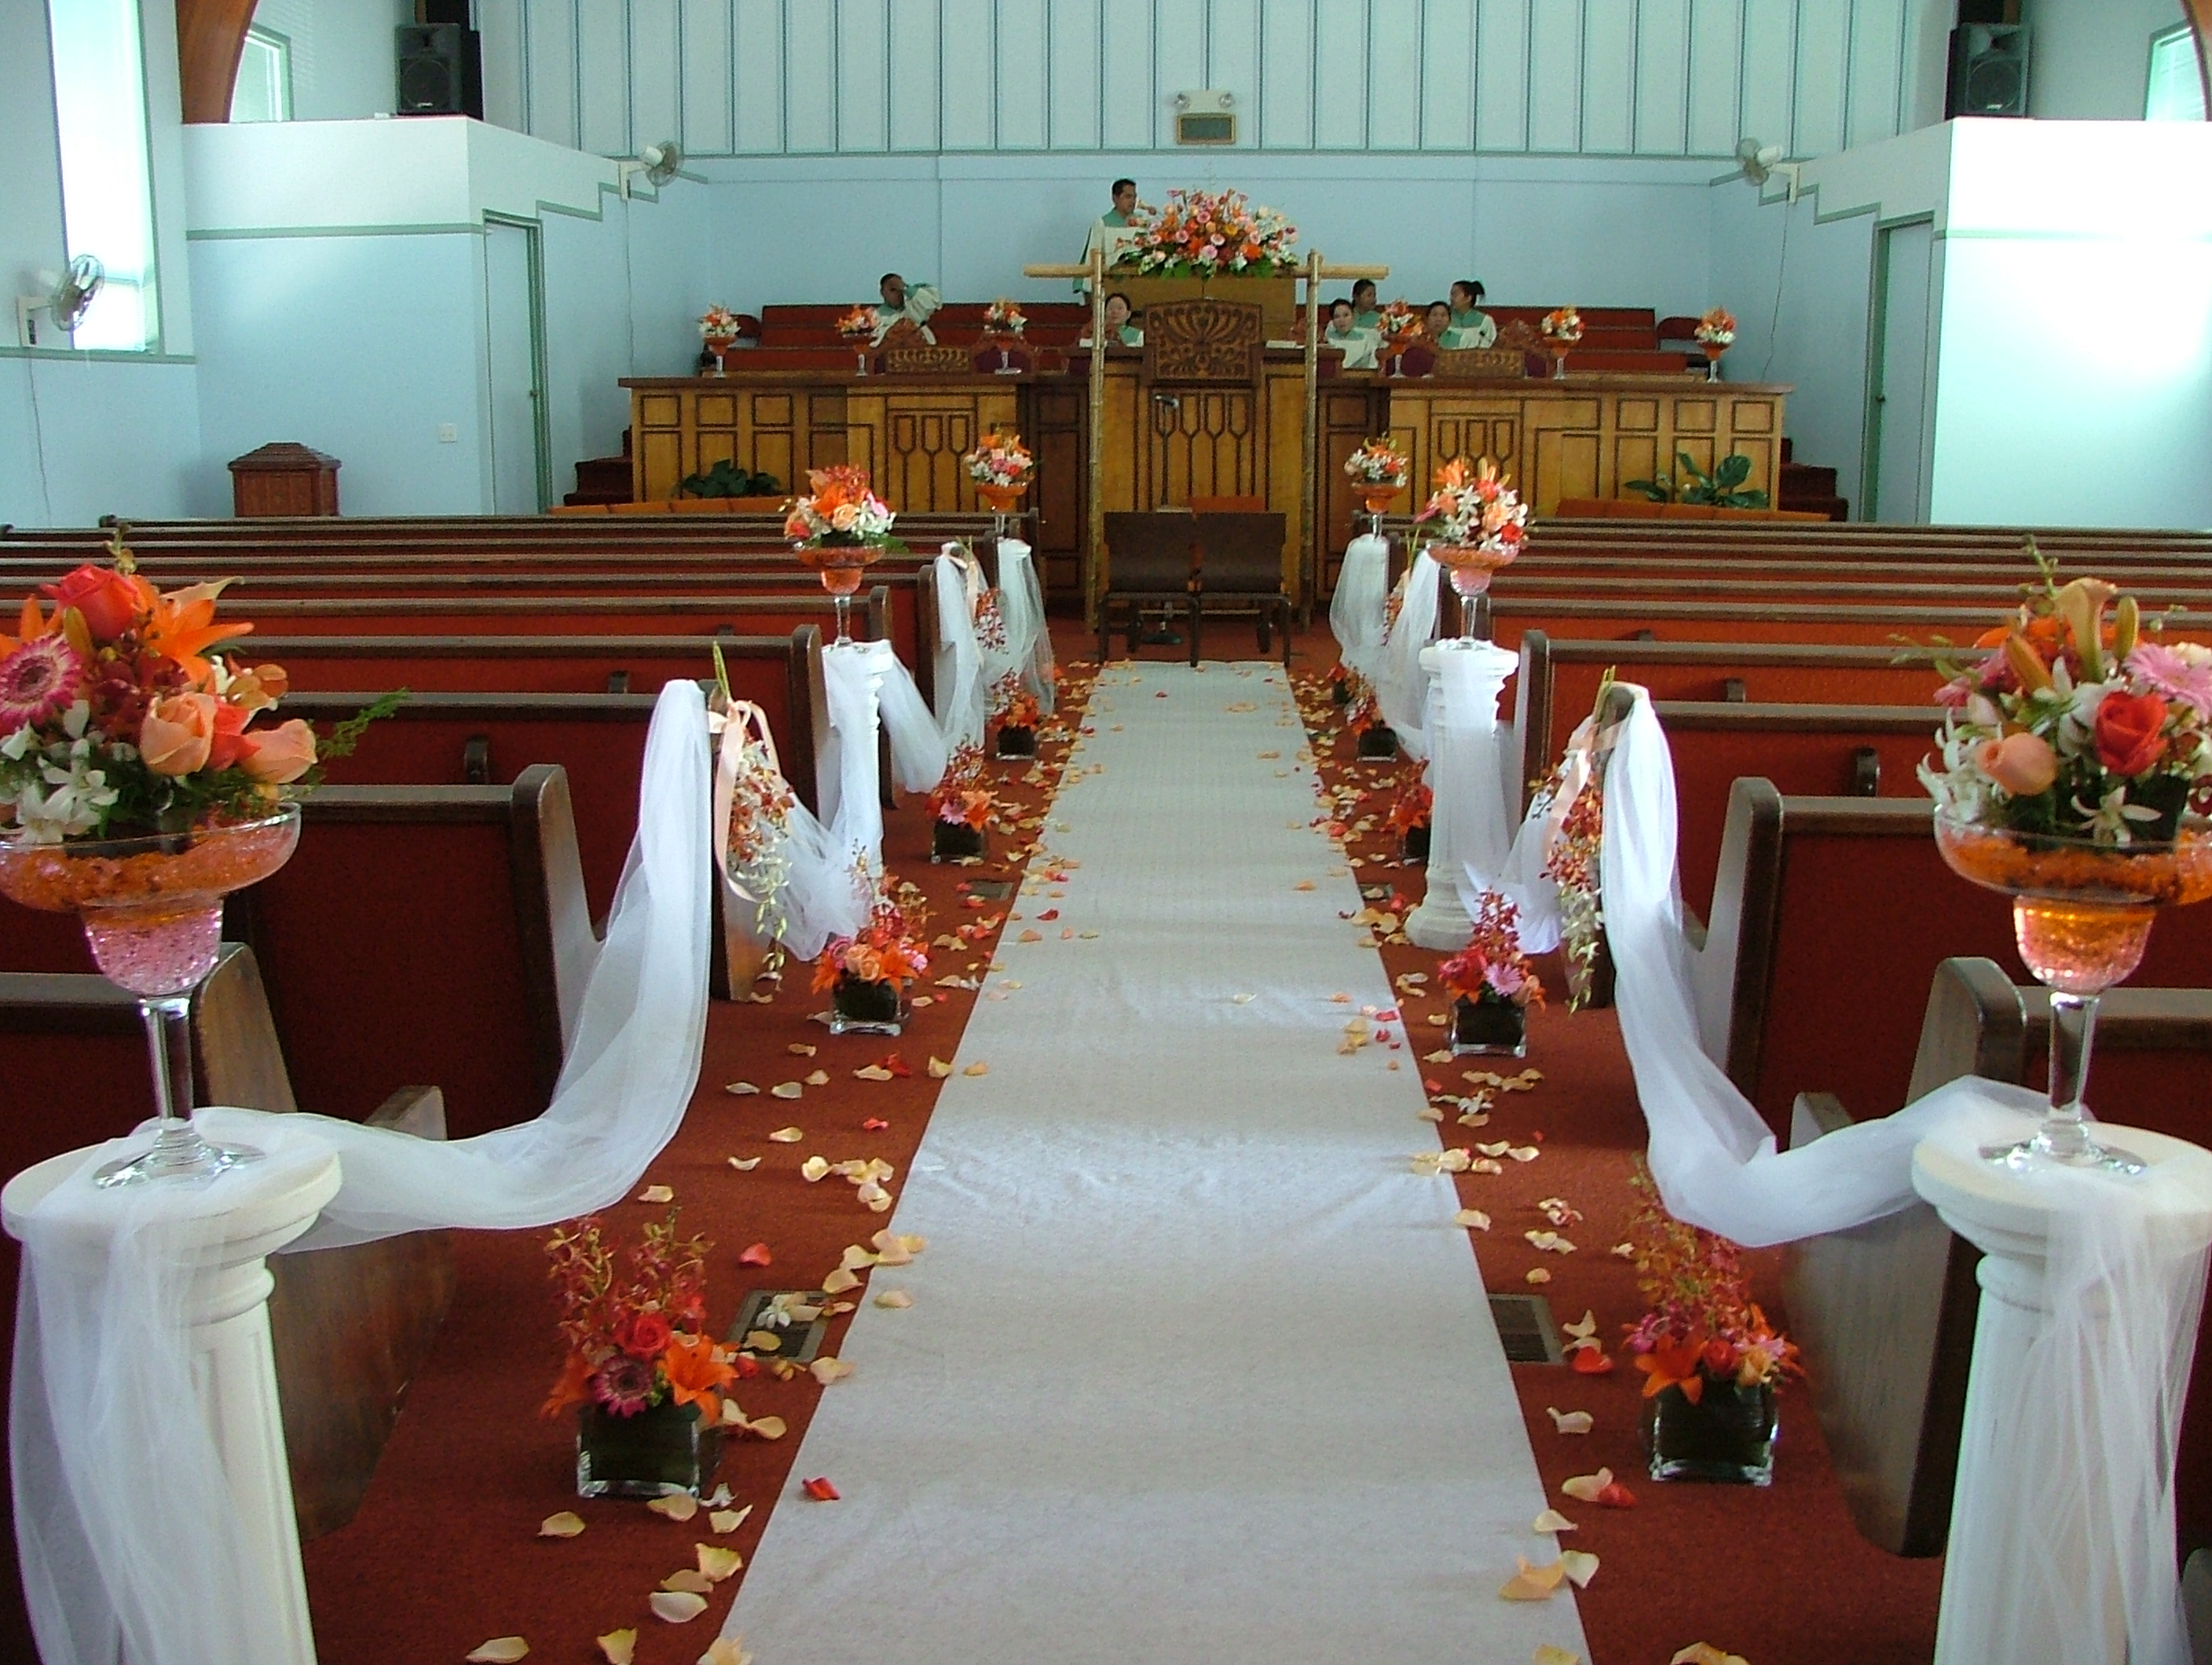 Church wedding aisle decoration ideas for Aisle wedding decoration ideas